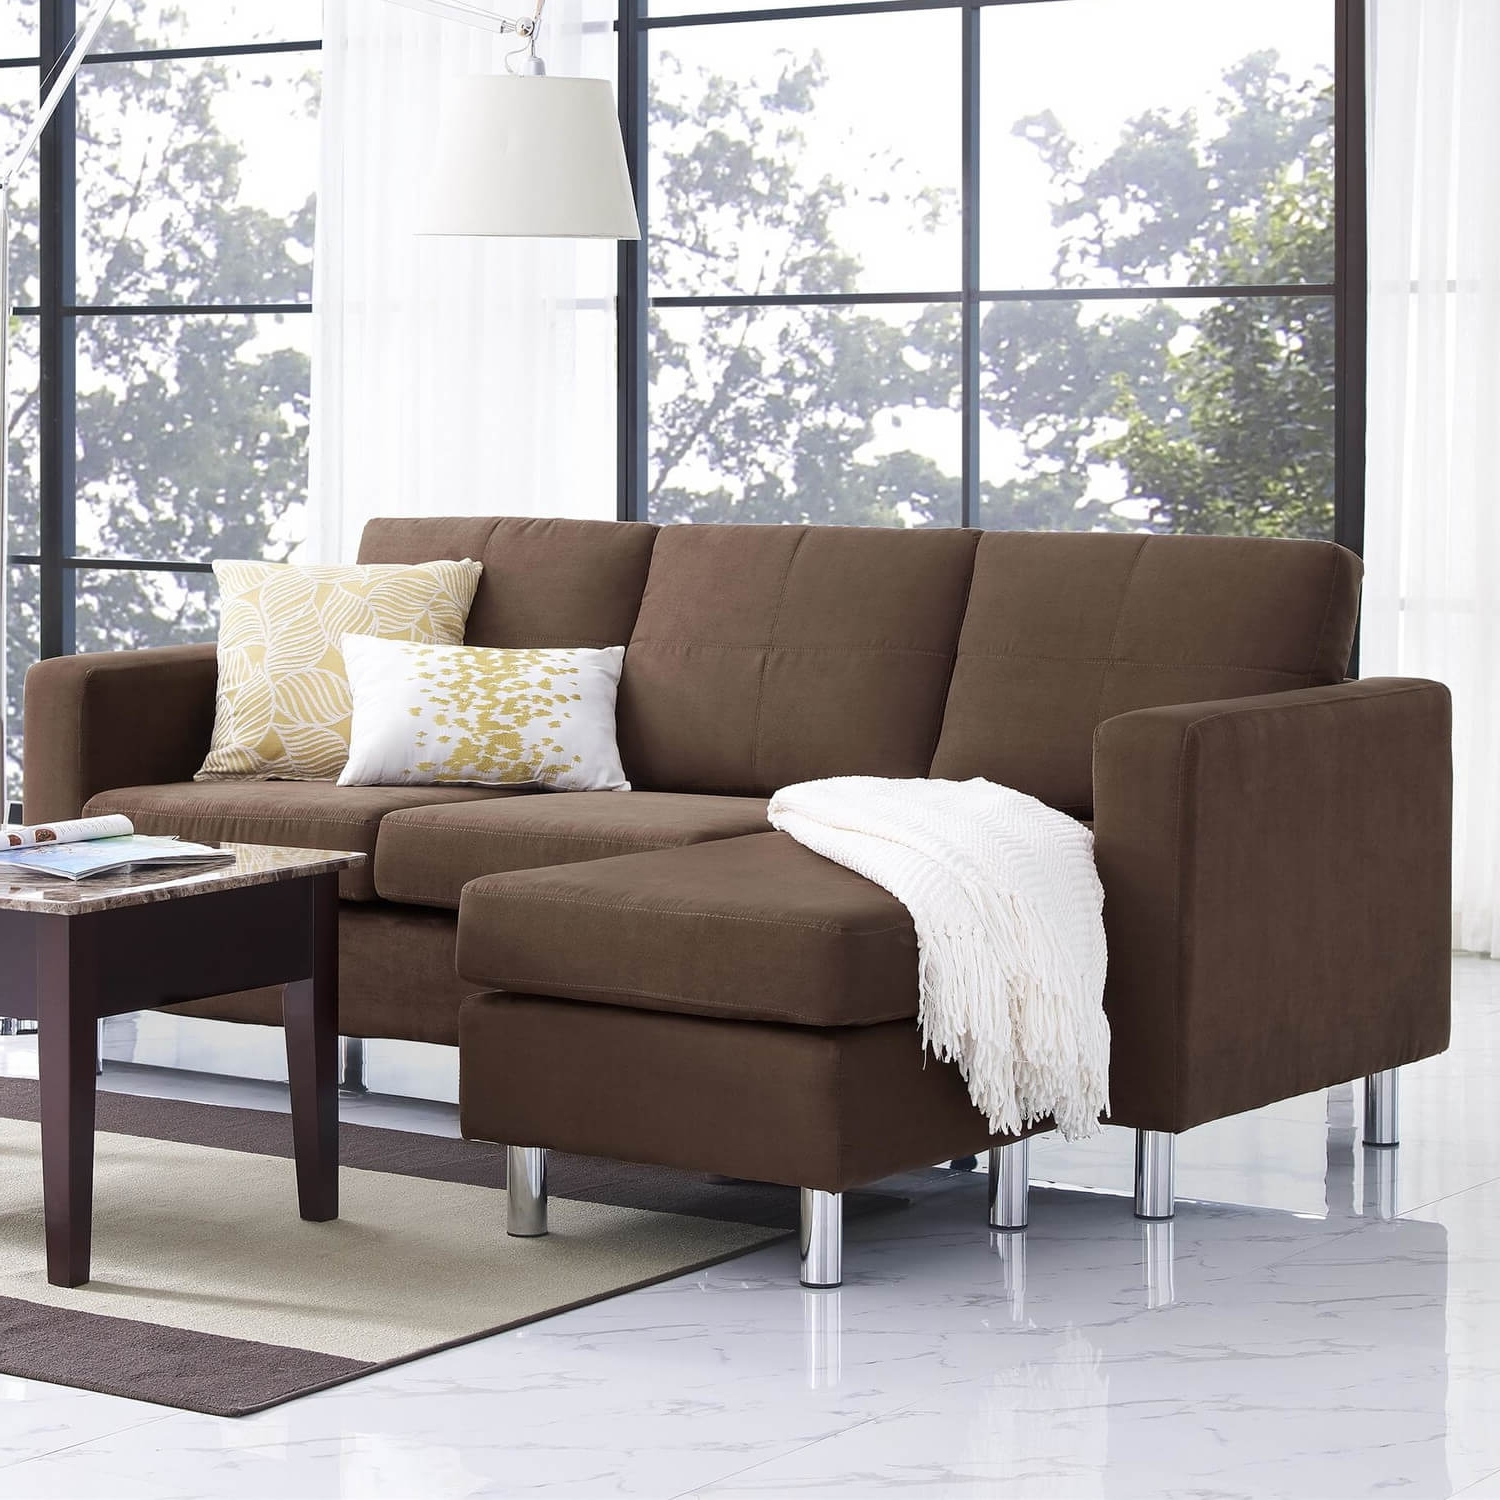 Sectional Sofas Under 400 With Regard To Well Liked 40 Cheap Sectional Sofas Under $500 For  (View 13 of 15)